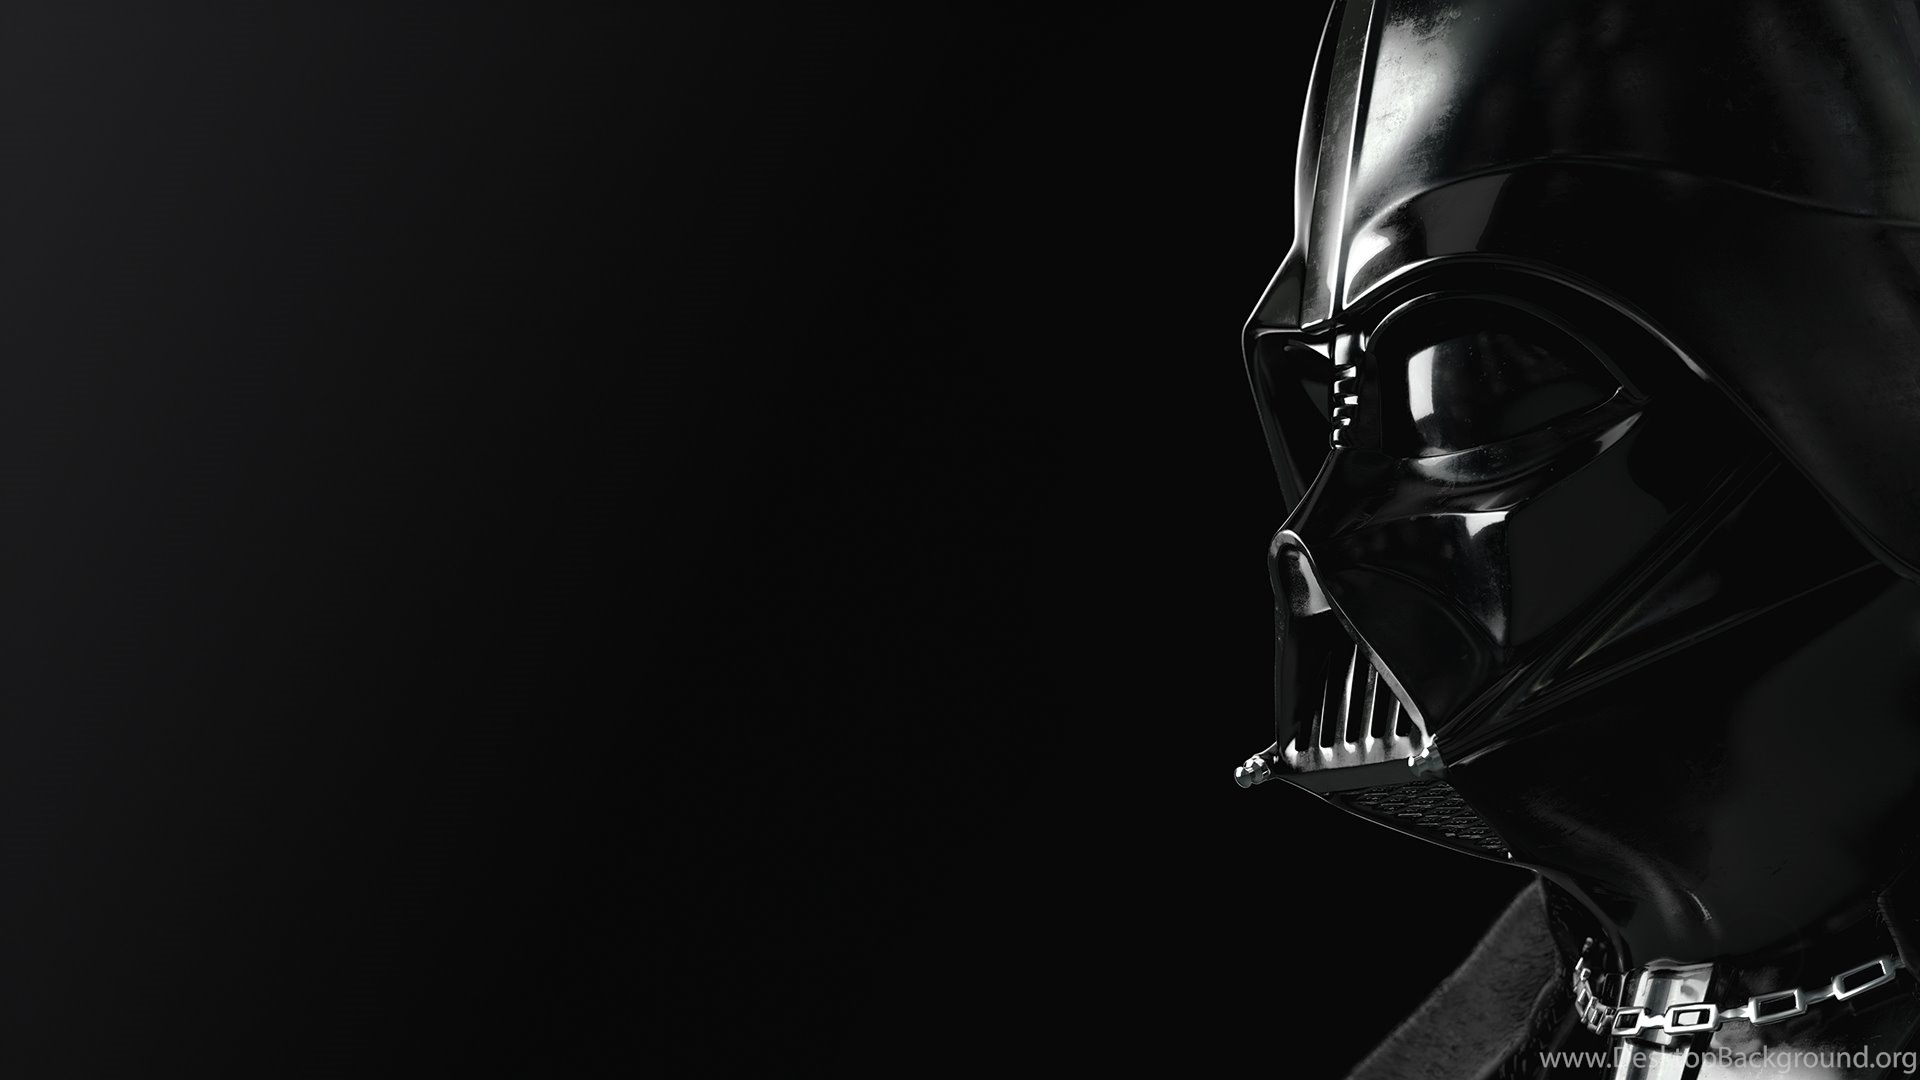 Darth Vader Desktop Wallpapers Imgur Desktop Background